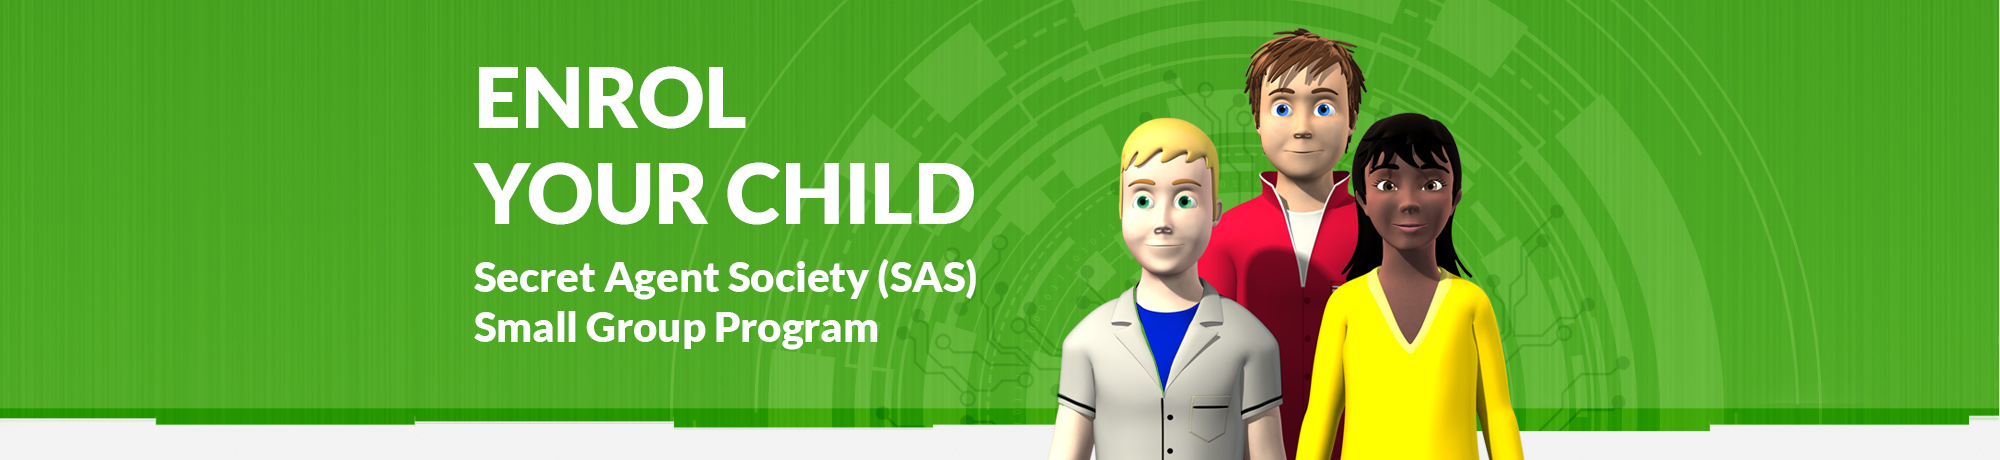 How to enroll your child in SAS